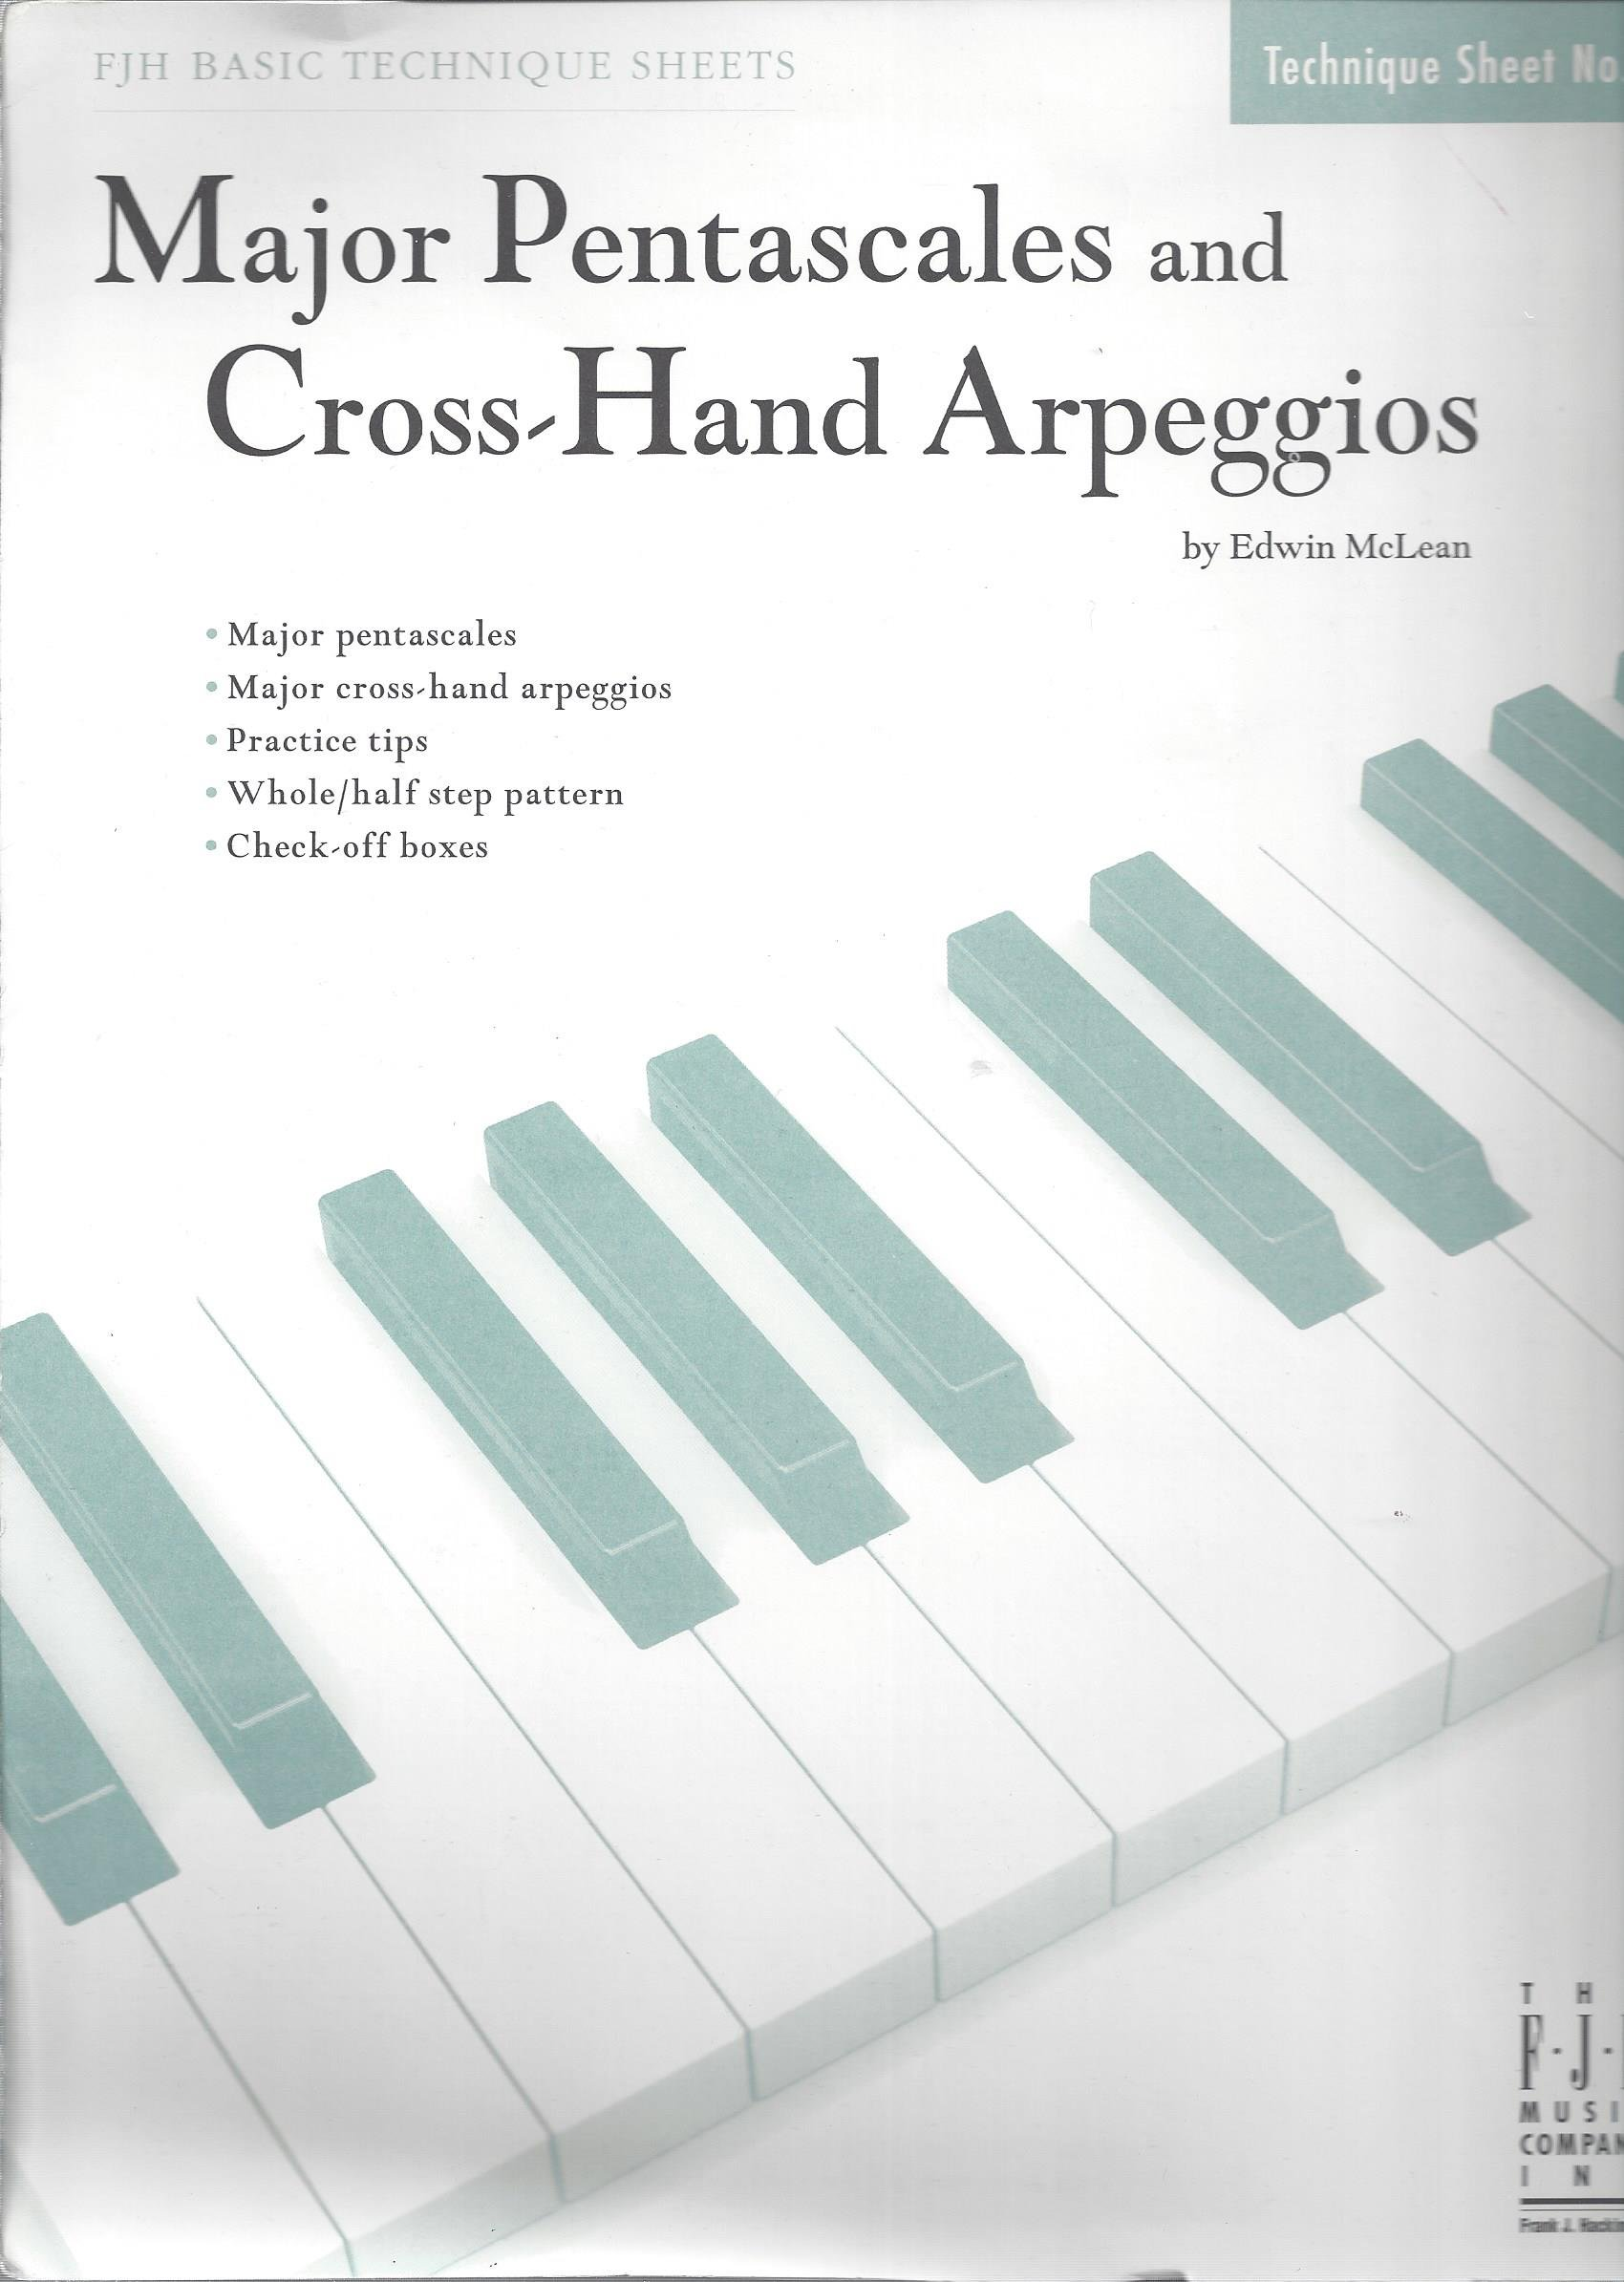 Major Pentascales and Cross-Hand Arpeggios - FJH Basic Technique ...